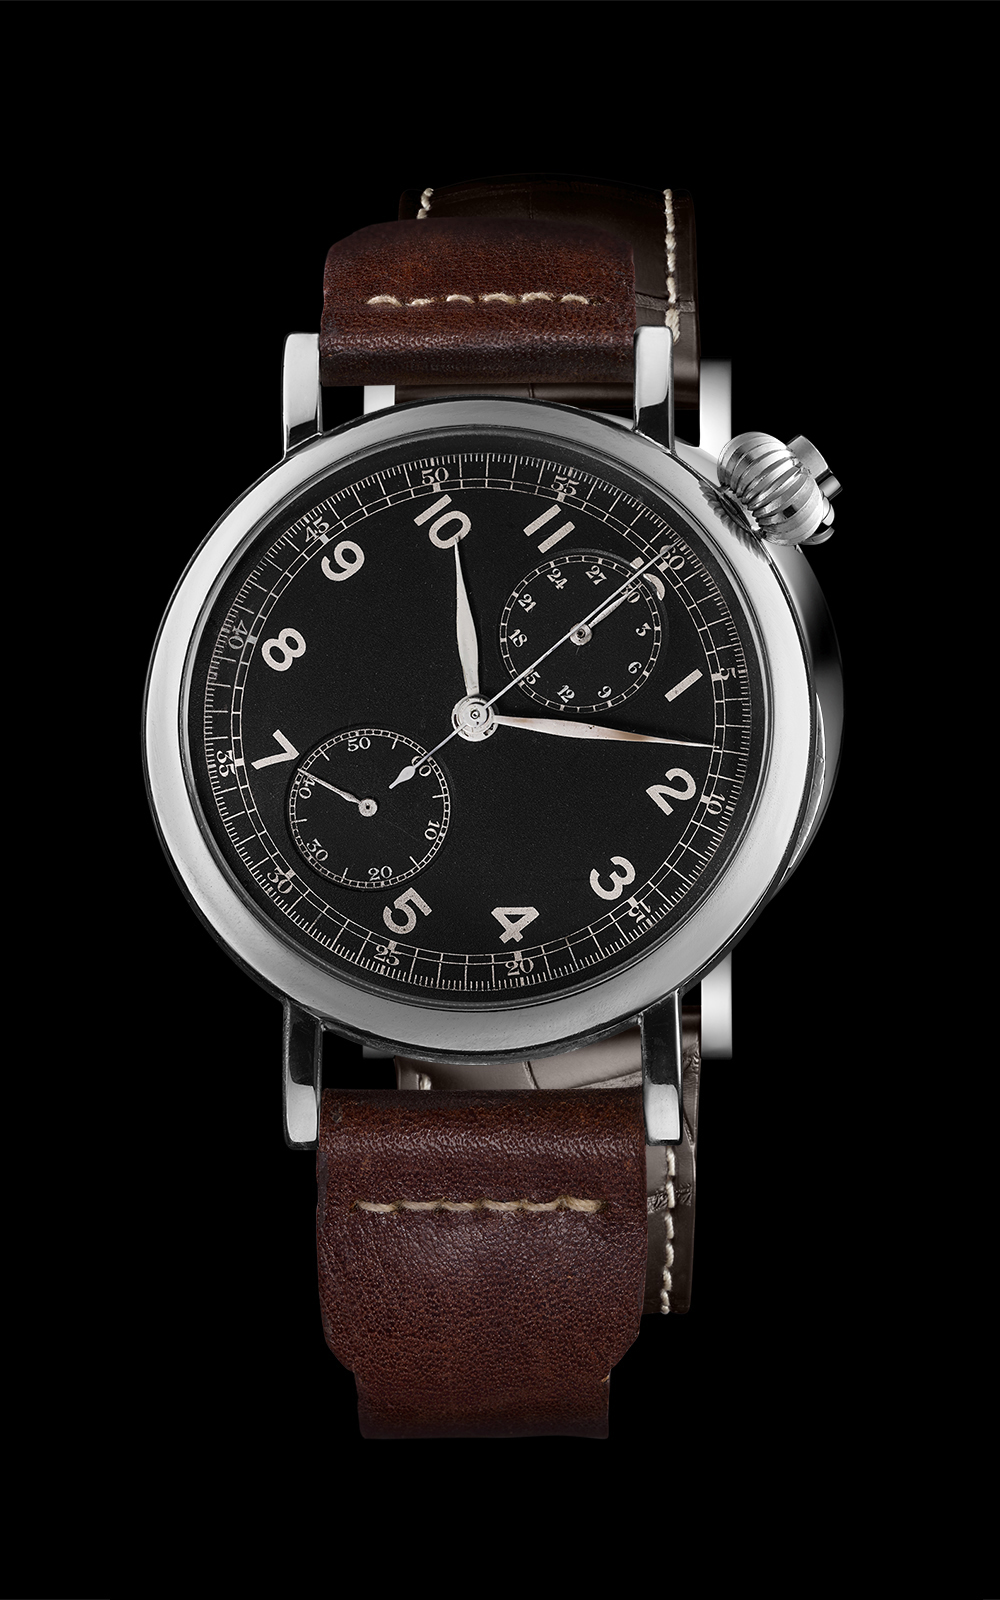 Longines Avigation Watch Type A-7 original